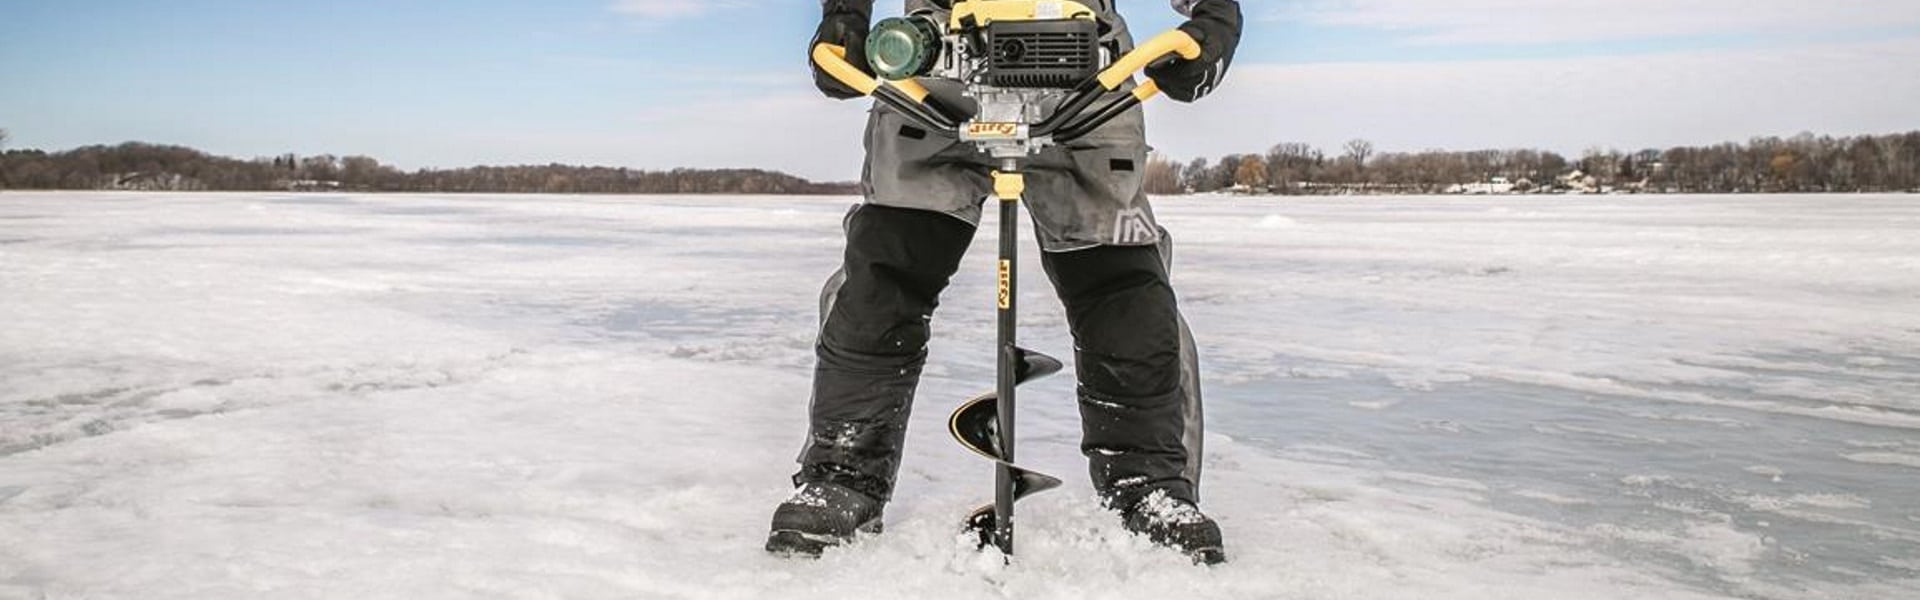 Best Electric Ice Augers Reviewed in Detail